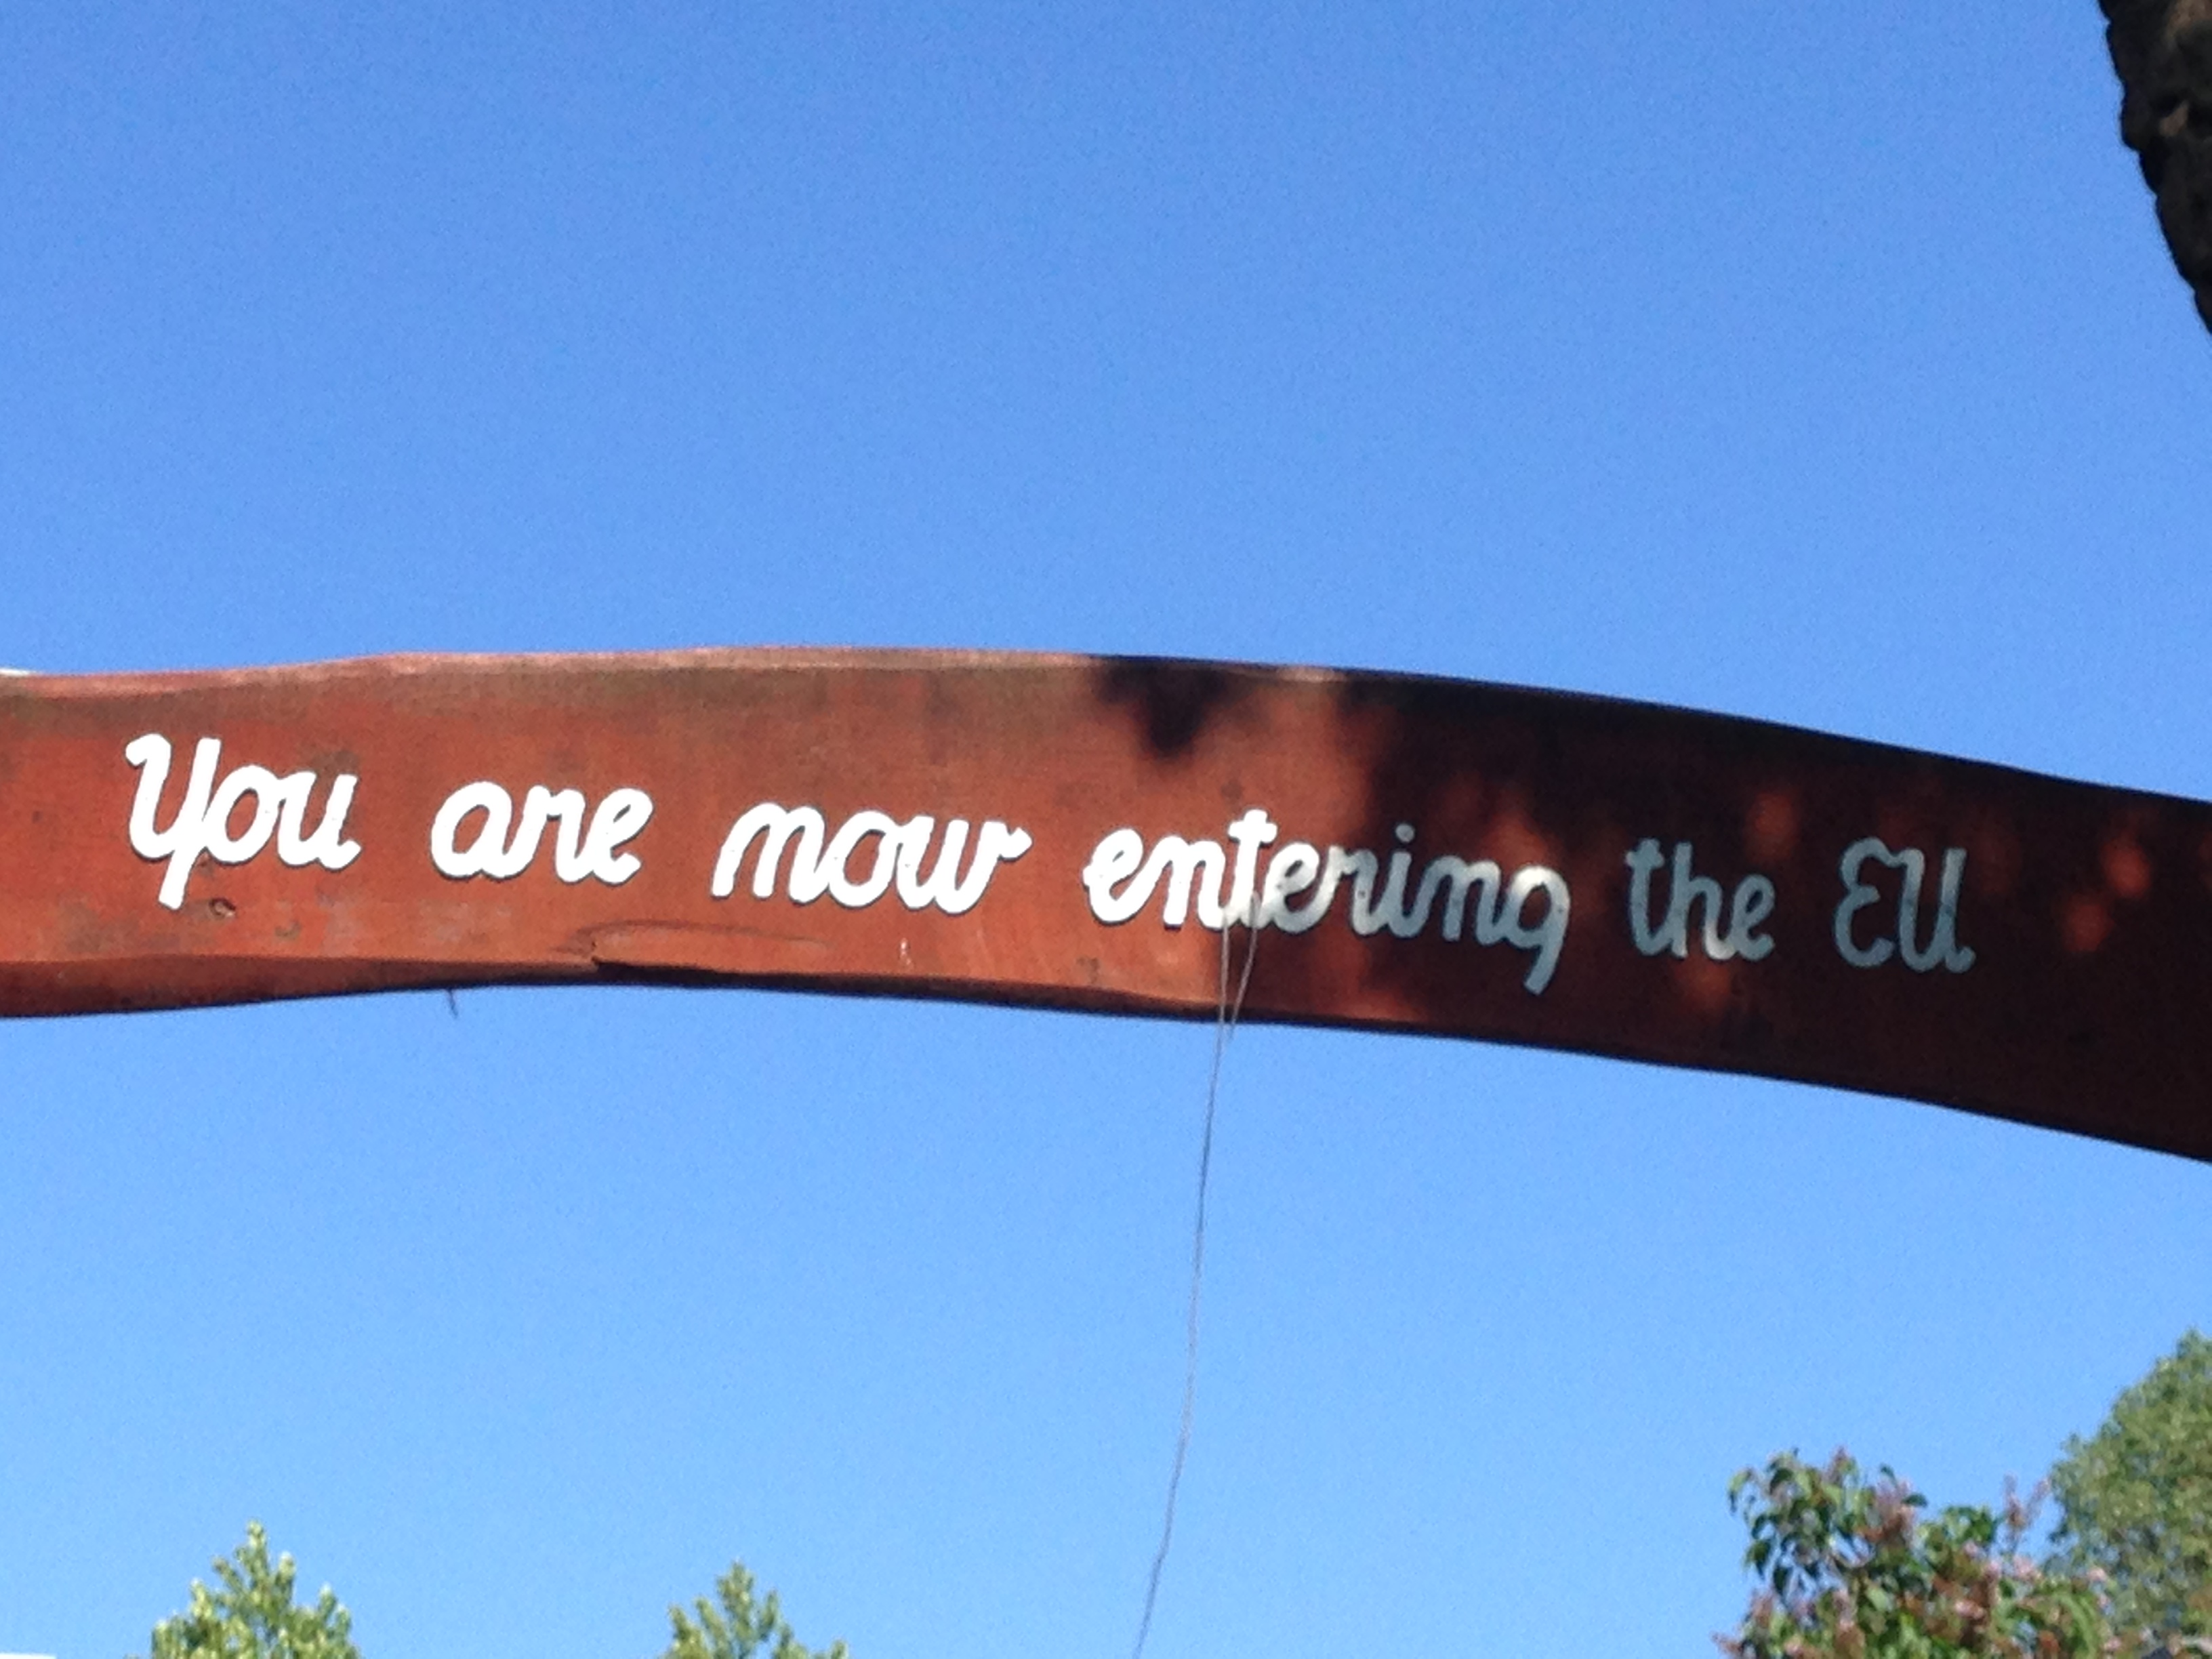 Christiania sign about leaving the EU